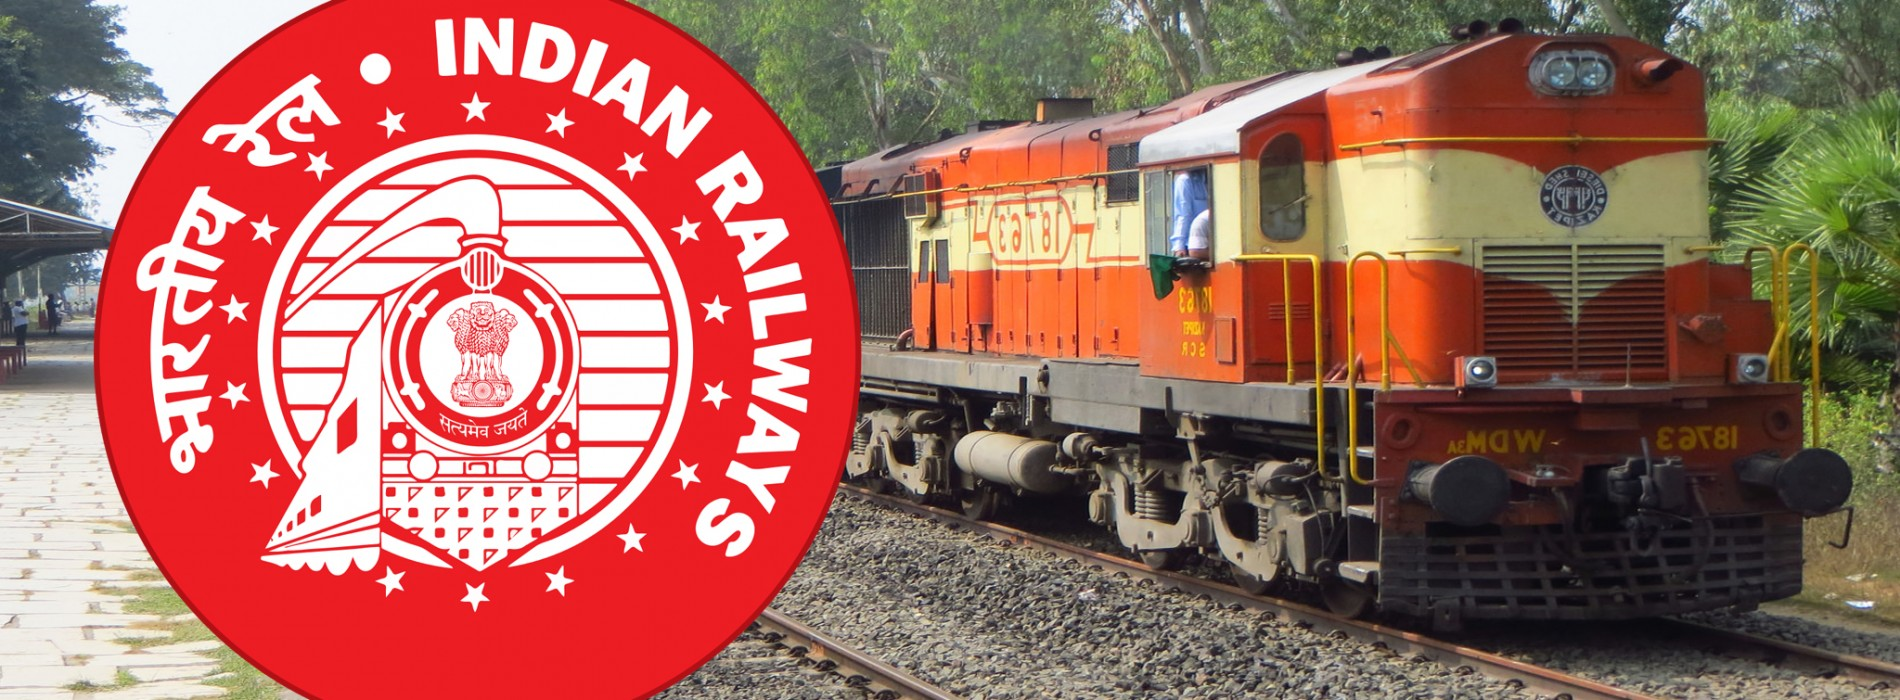 Japan to assist railway safety in India